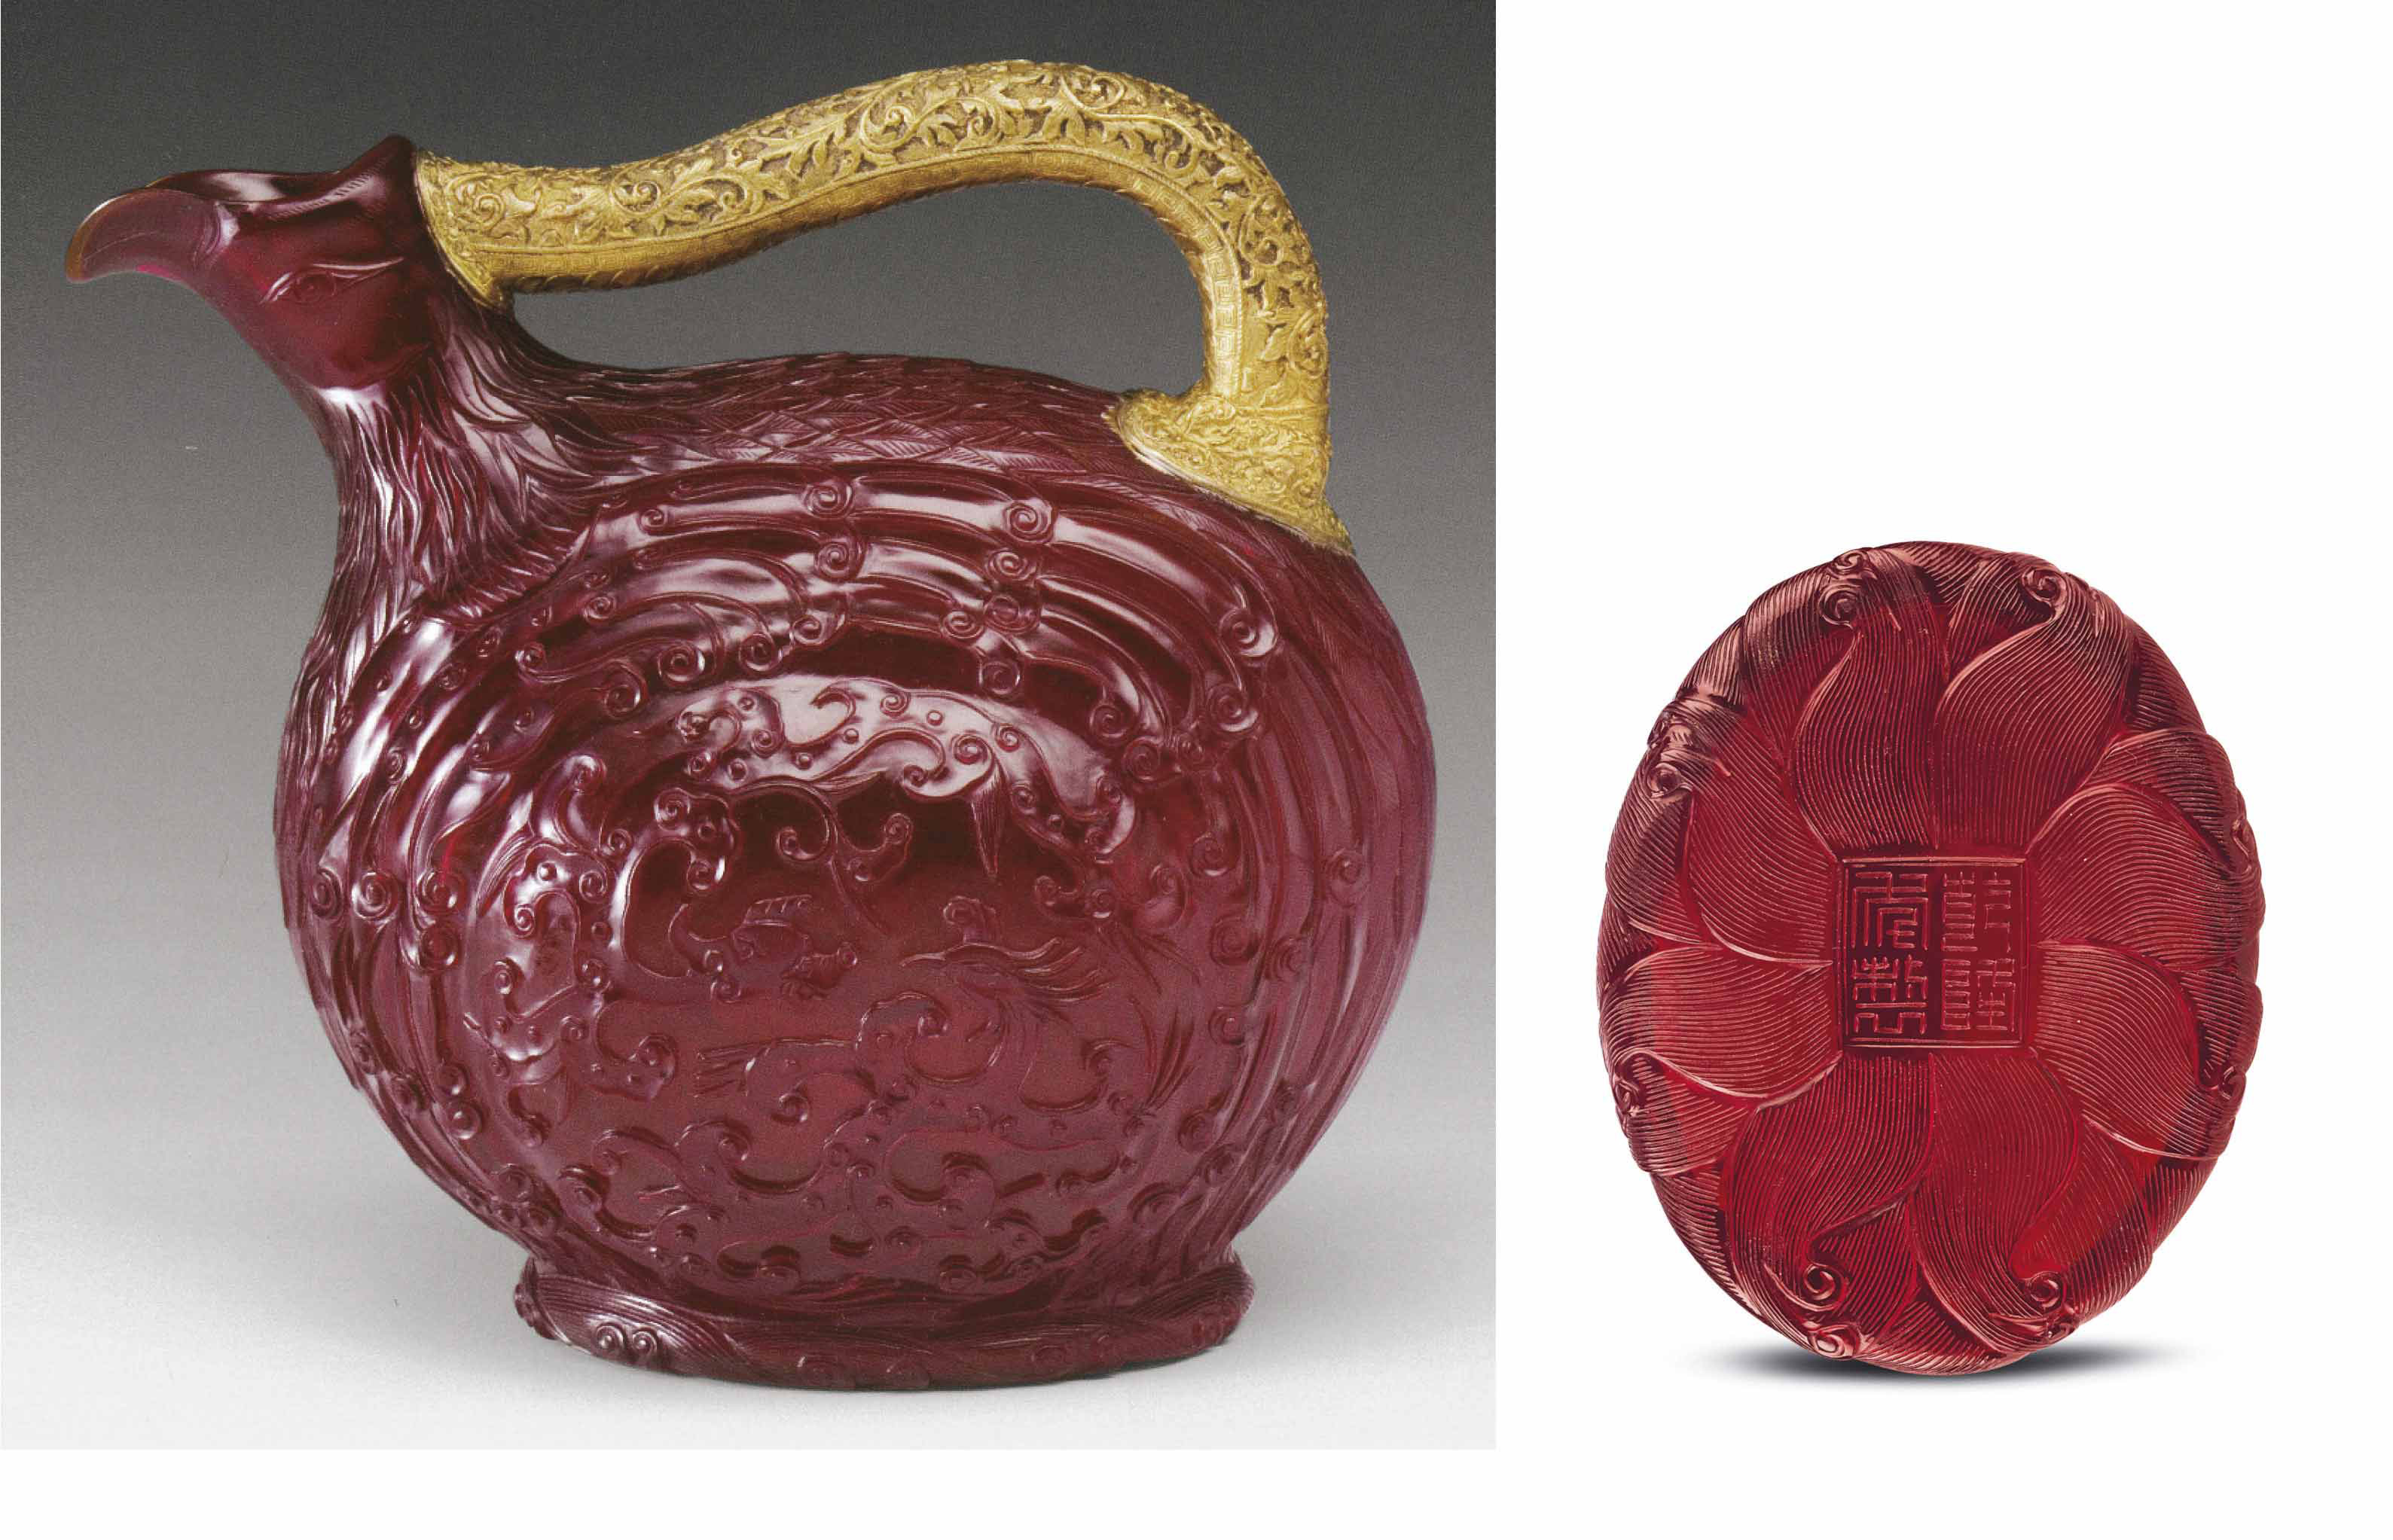 A VERY RARE IMPERIAL MOULDED AND CARVED RUBY-RED GLASS BIRD-FORM EWER